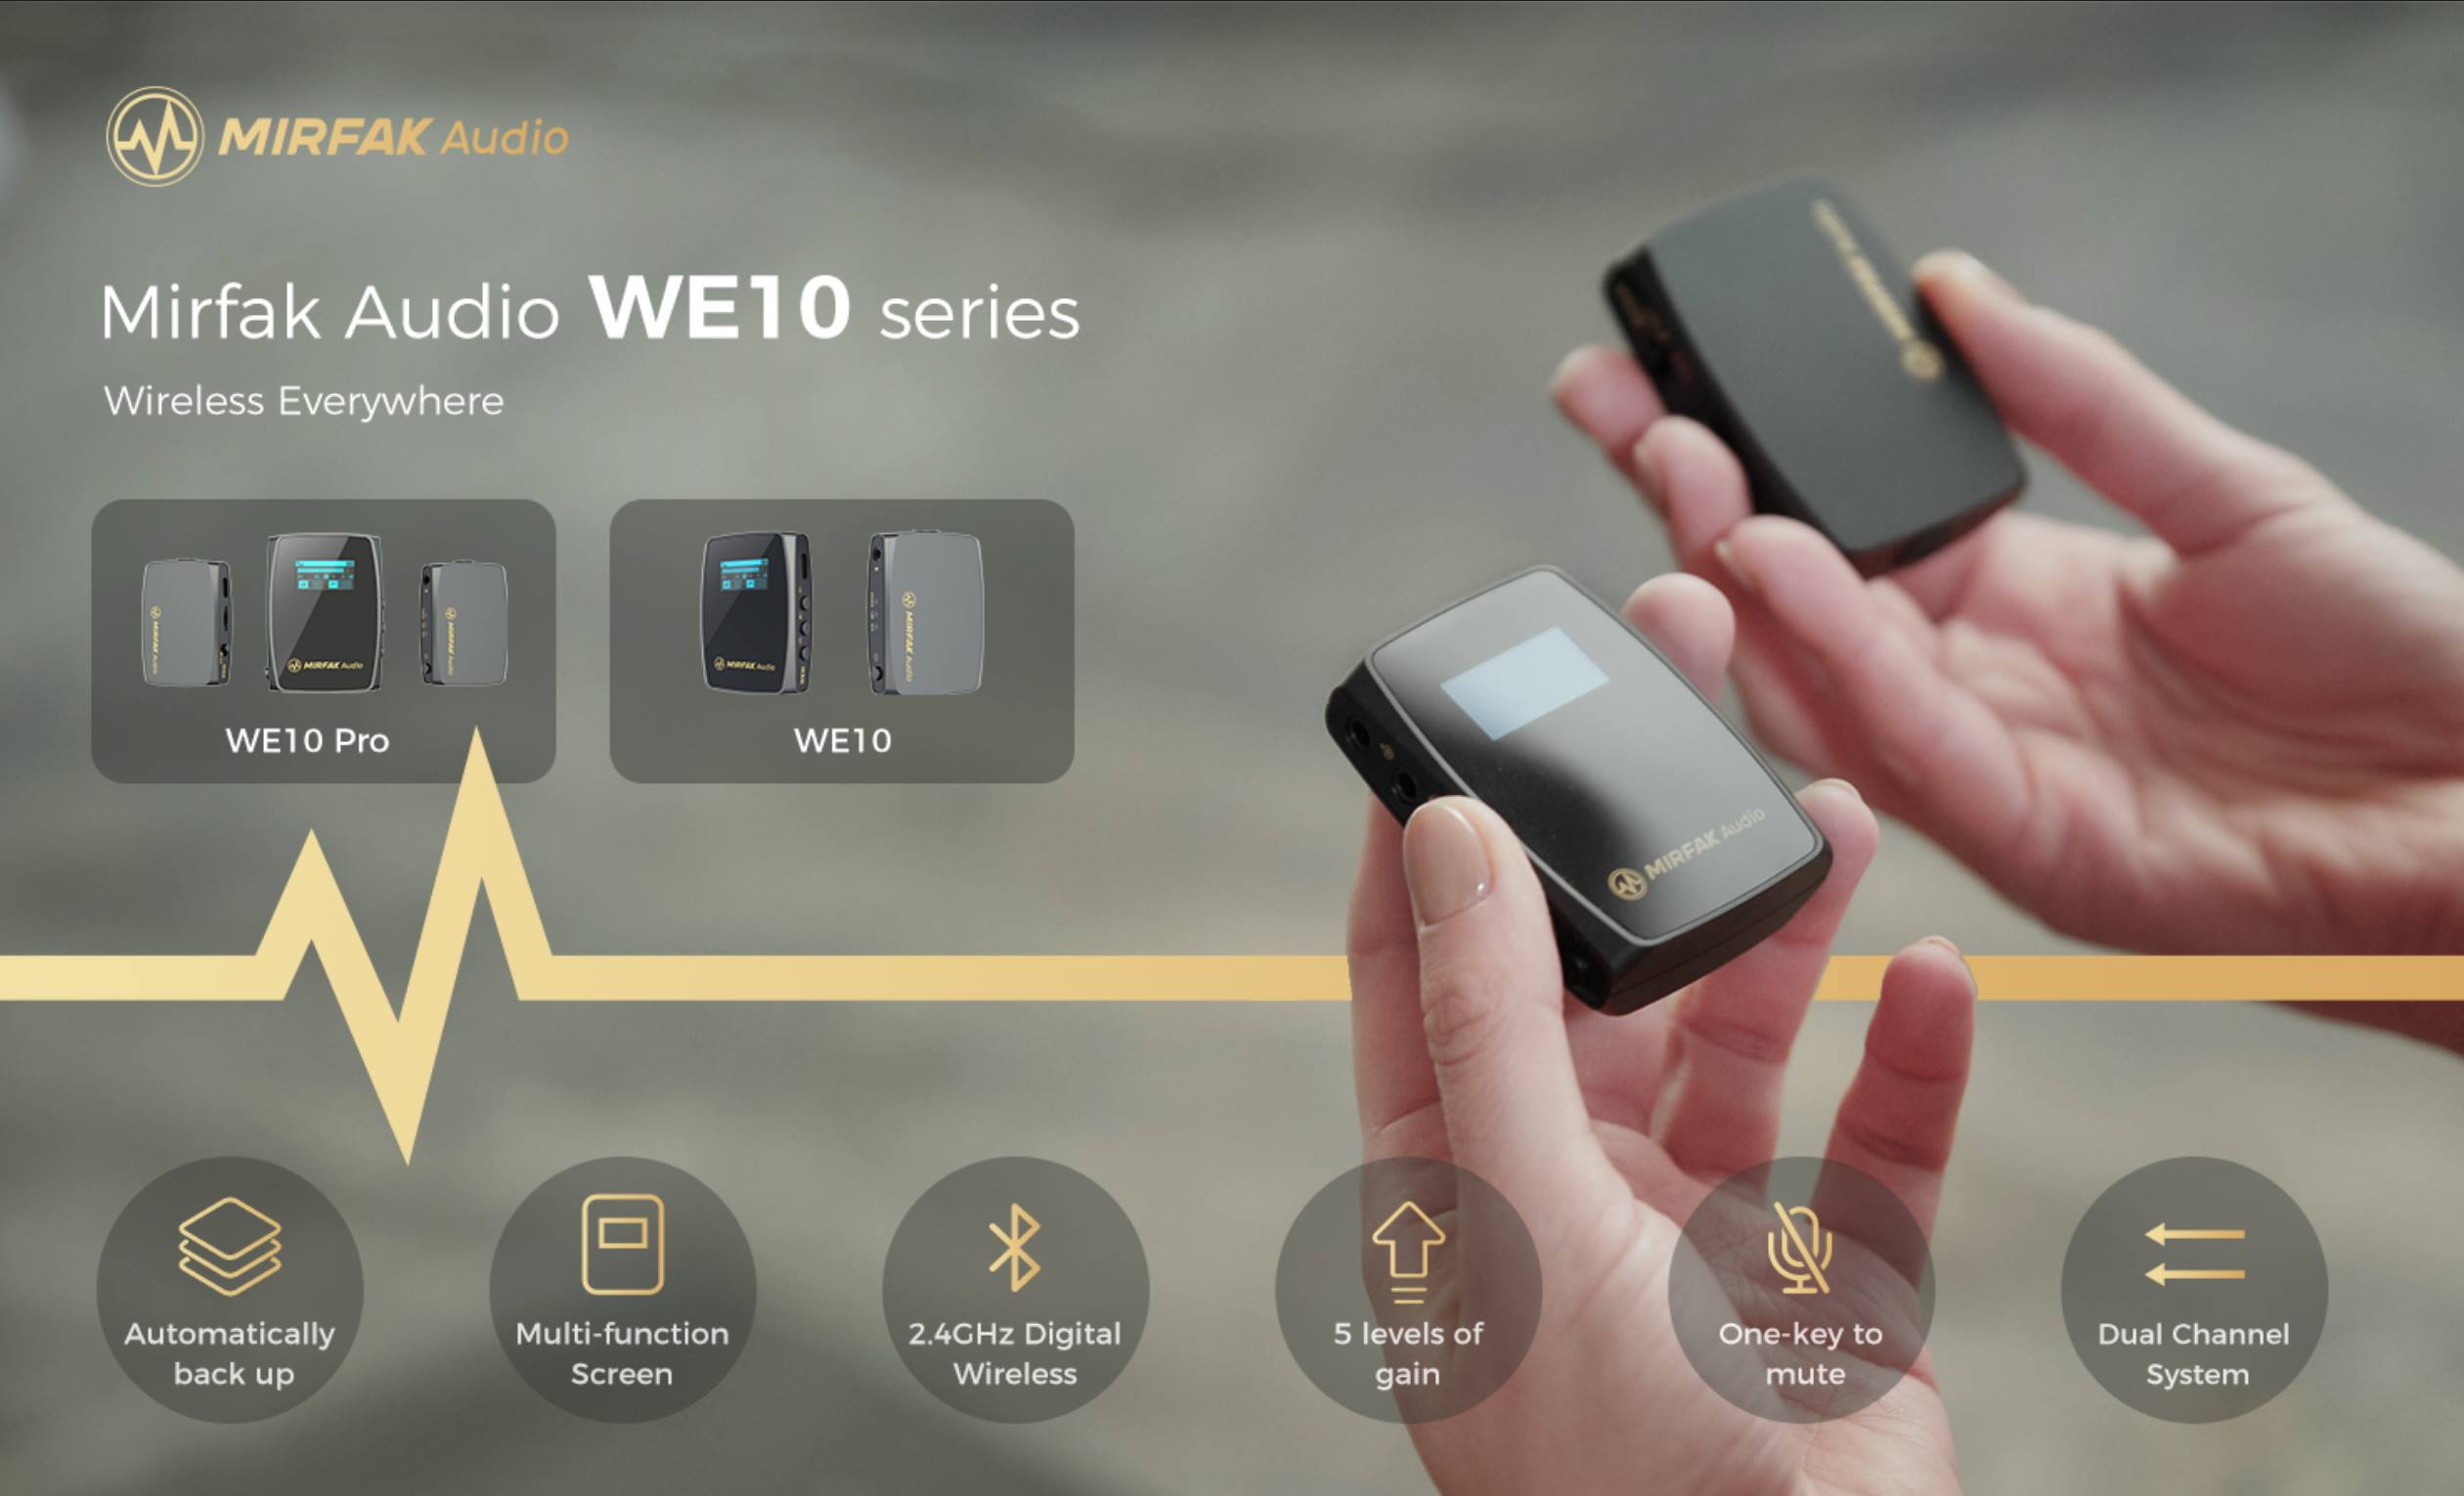 The WE10 and WE10 PRO units